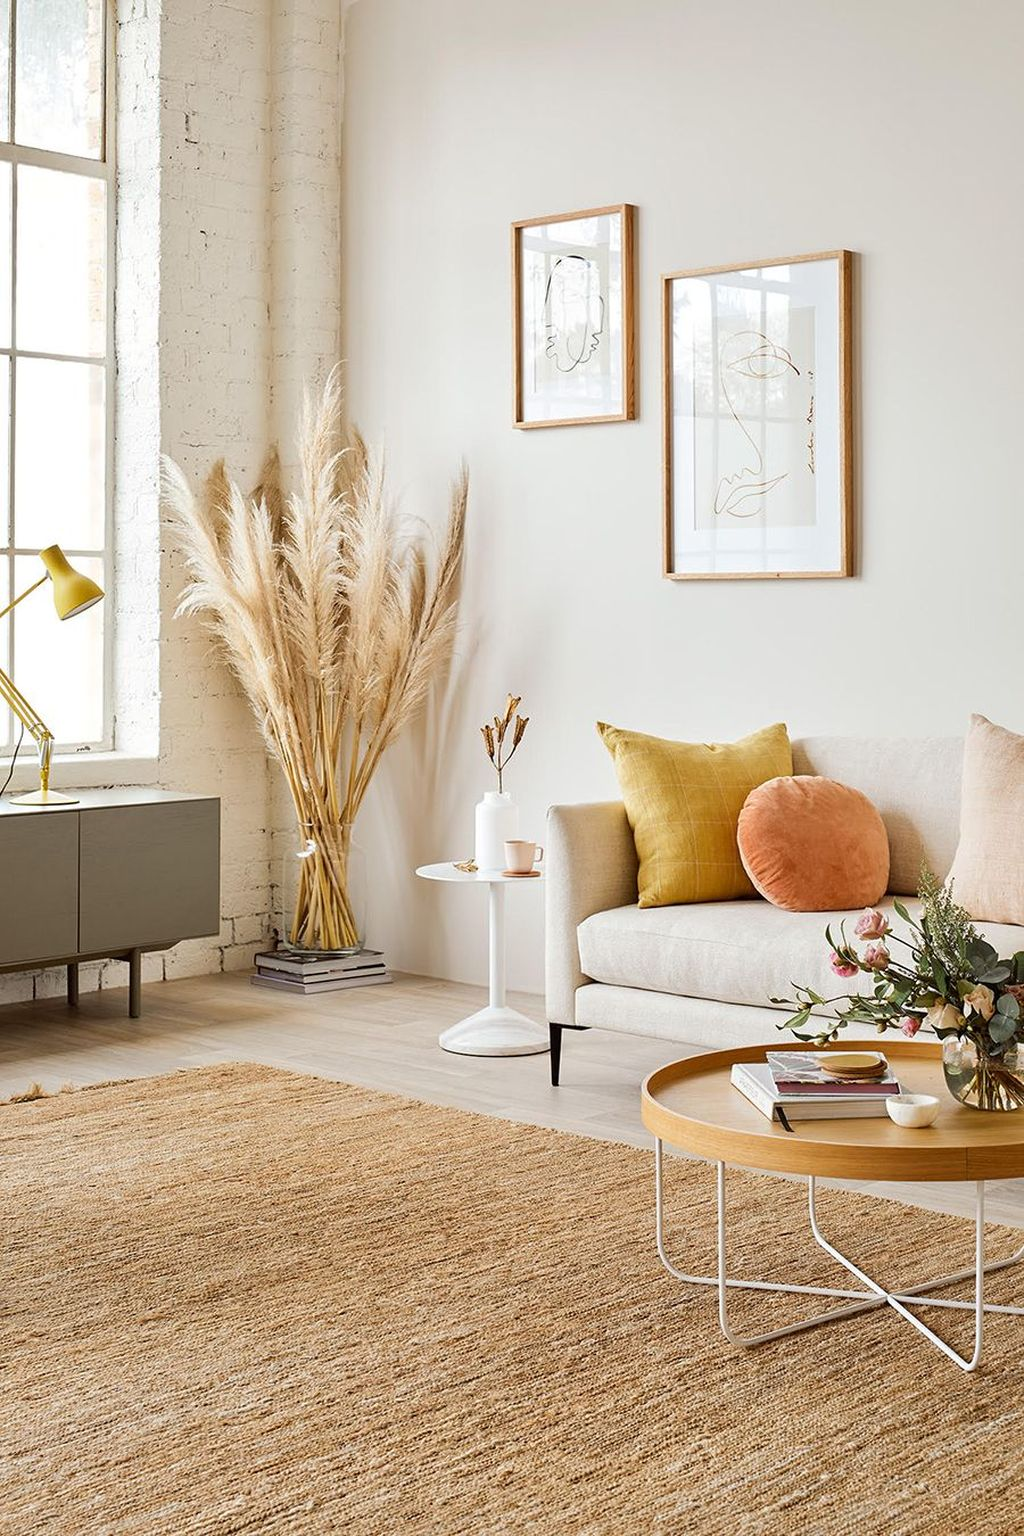 Inspiring Fall Interior Design Ideas 25